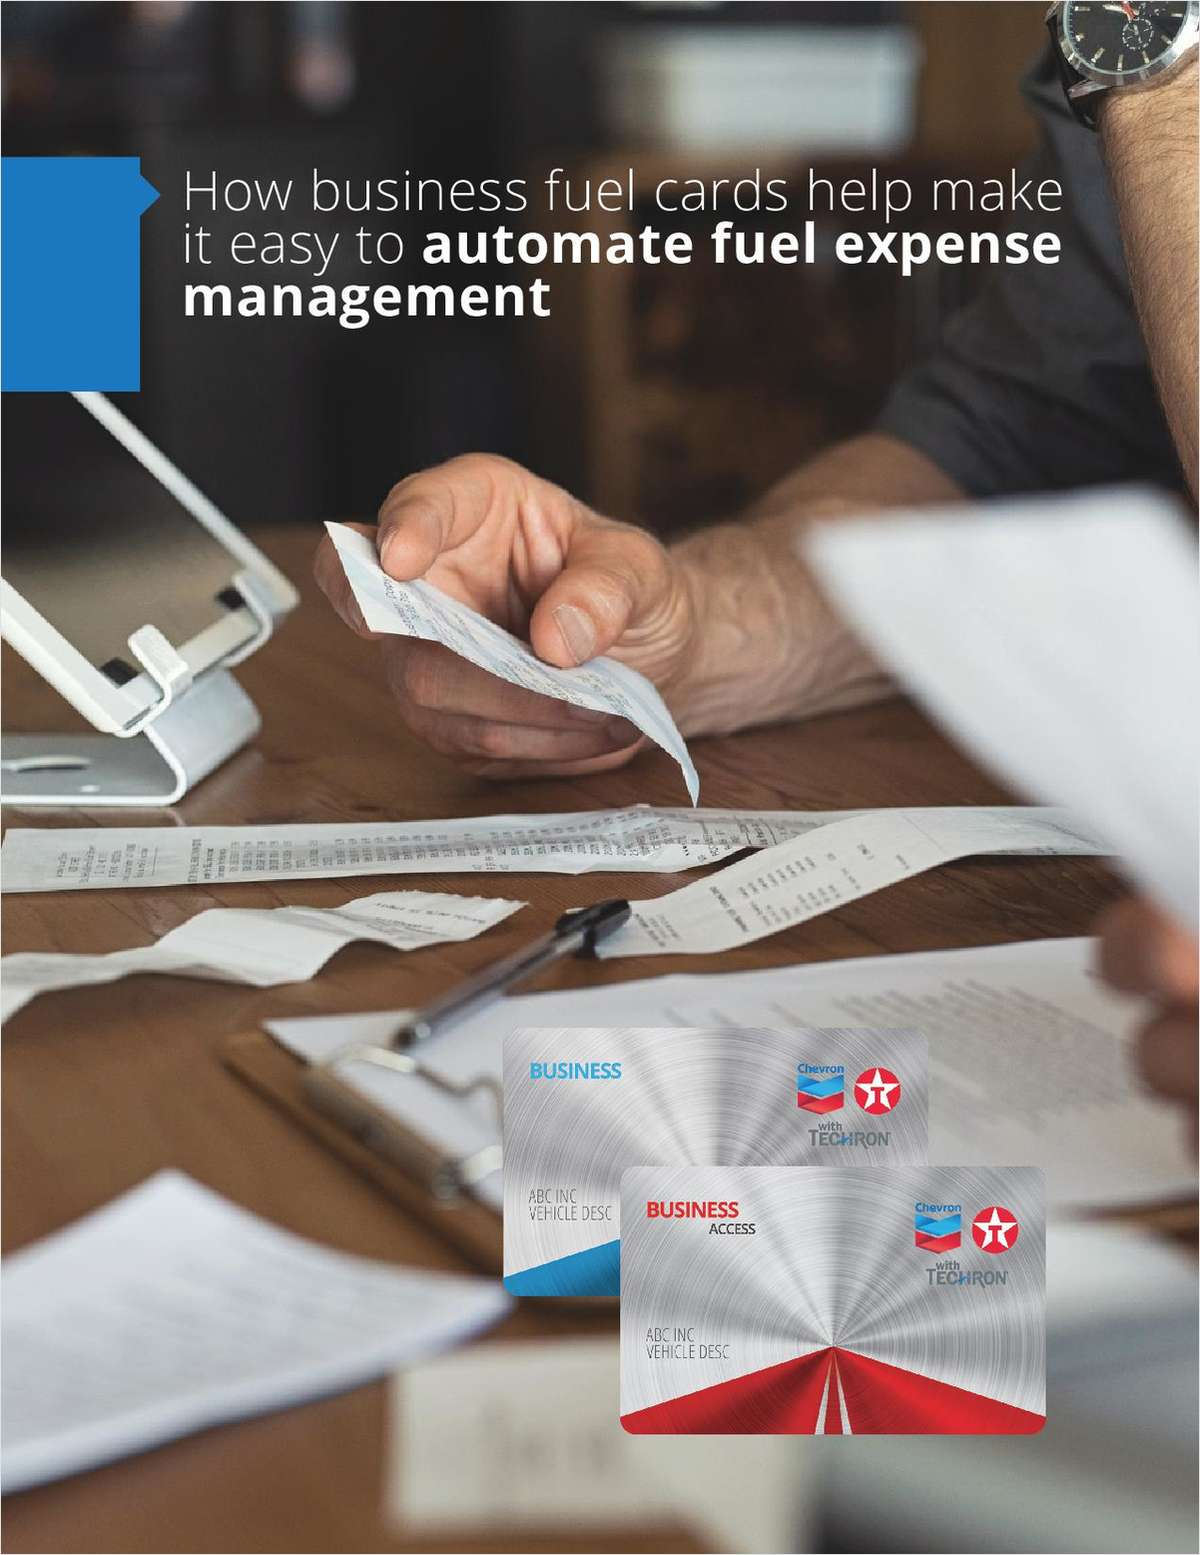 How Business Fuel Cards Help Make it Easy to Automate Fuel Expense Management